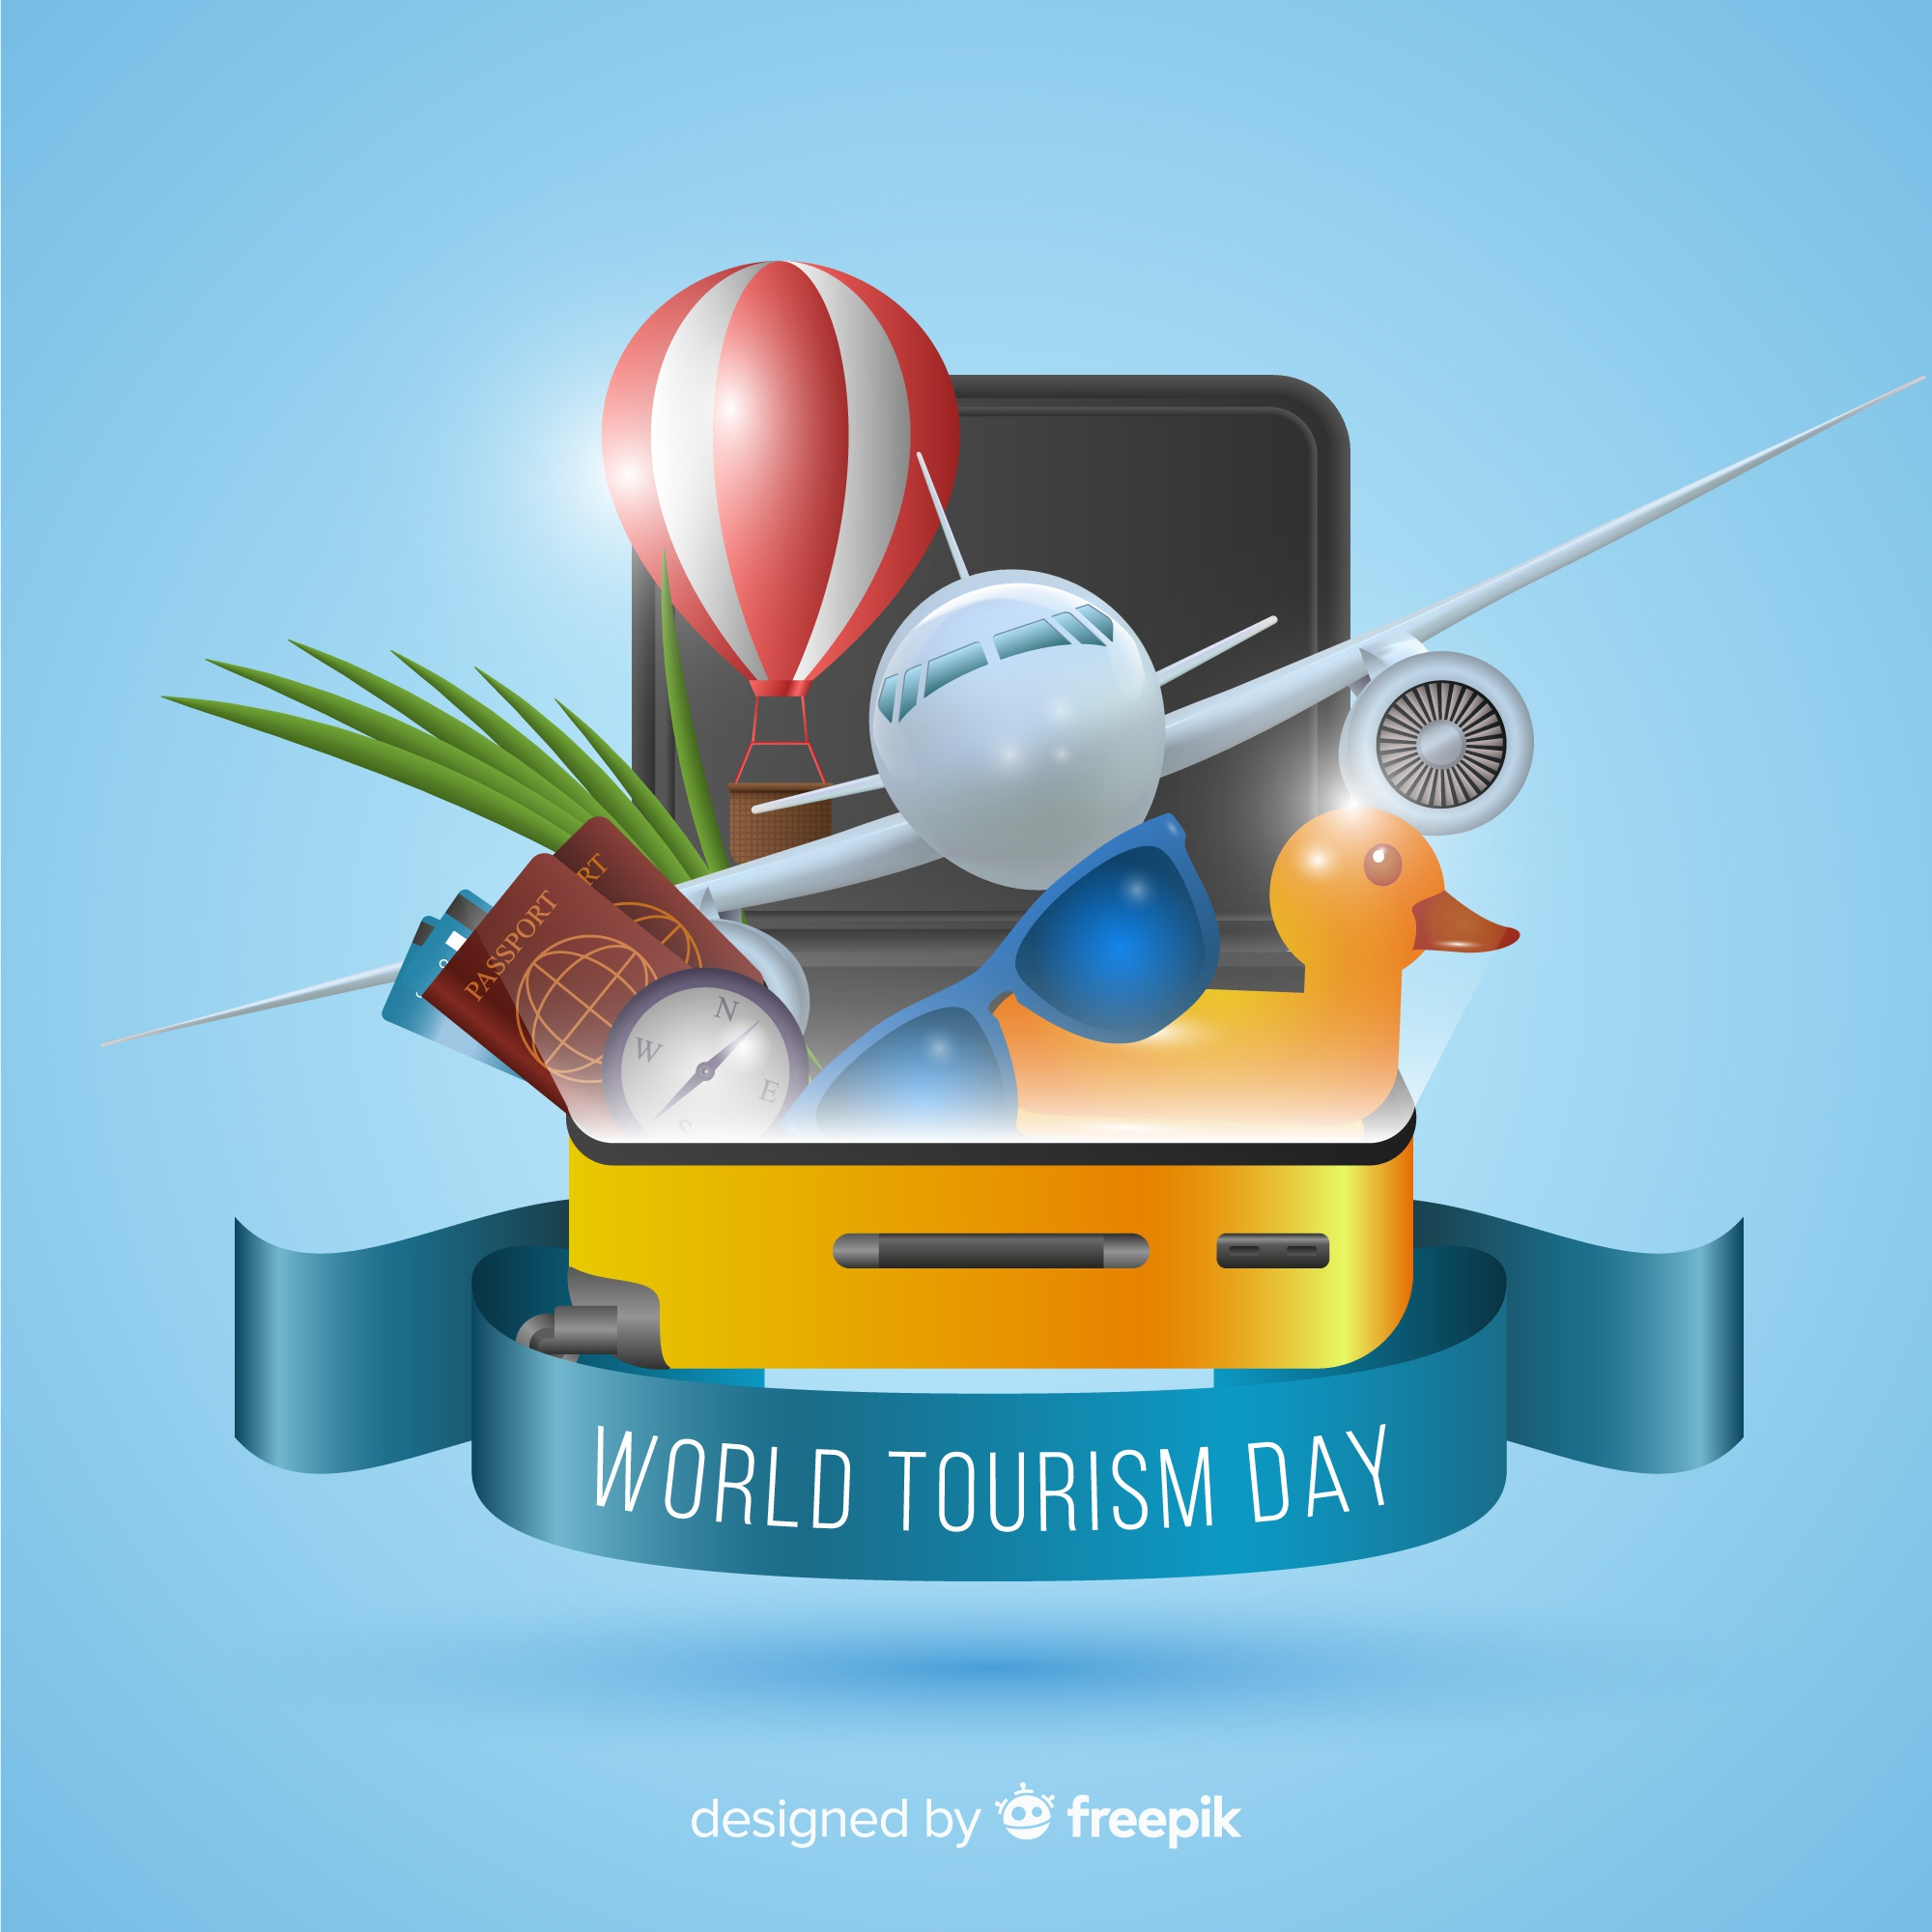 Tourism day background in realistic style